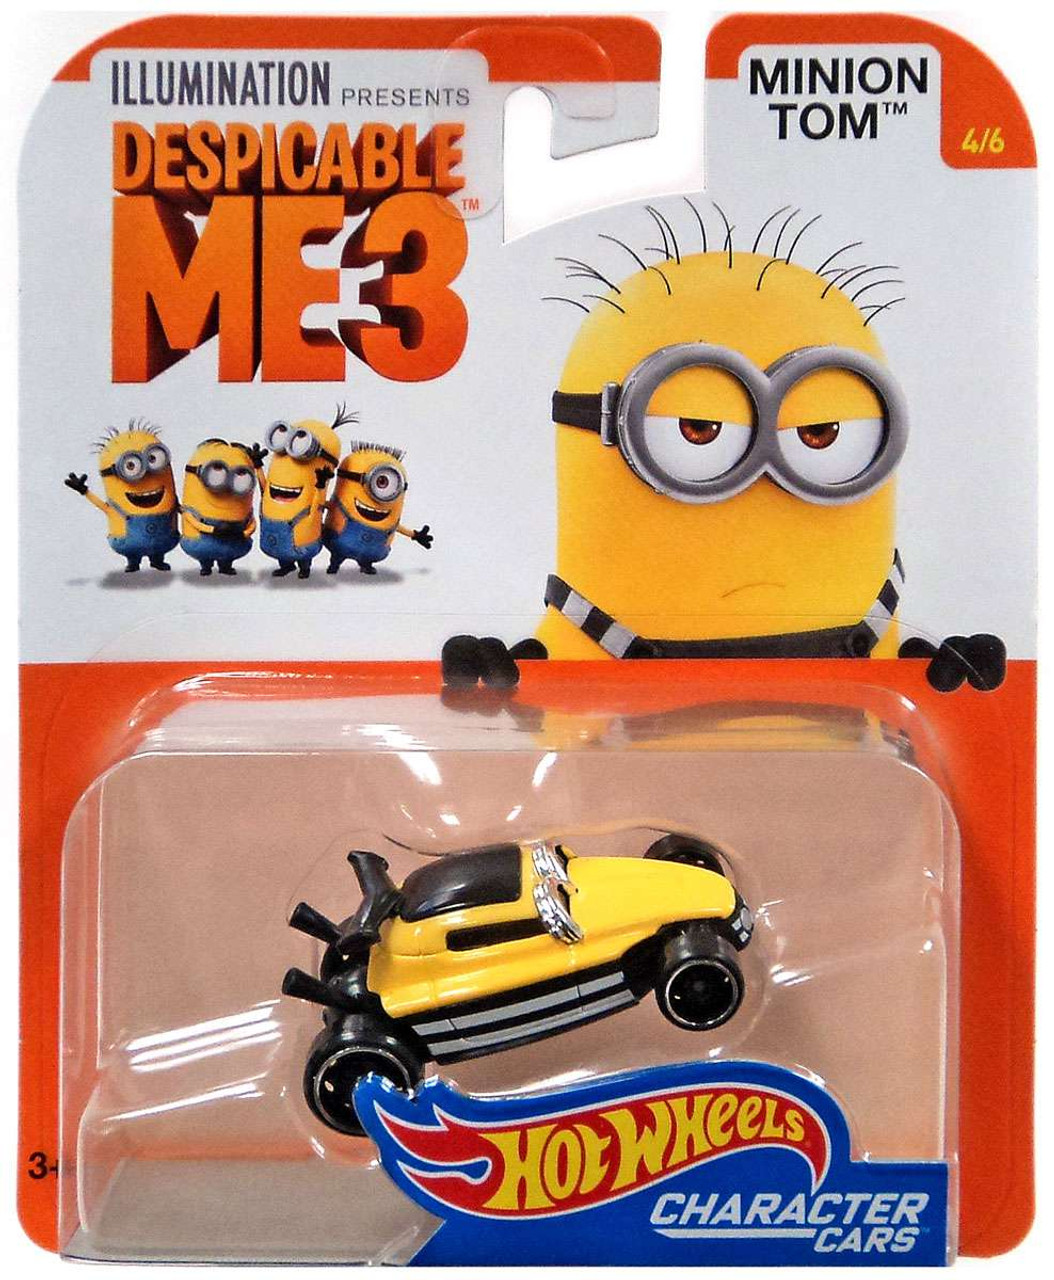 Hot Wheels Despicable Me 3 Minion Tom 164 Diecast Character Car 46 Mattel Toys Toywiz